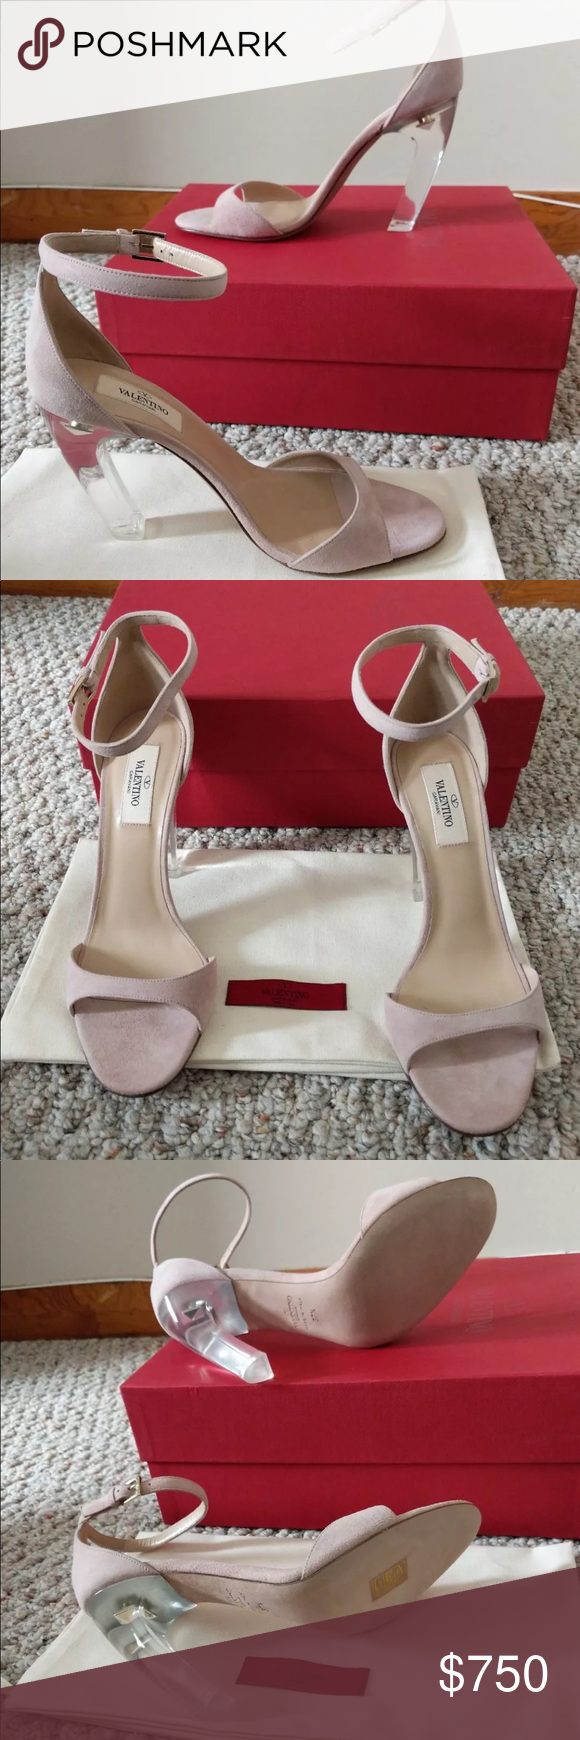 a926a63e4d63 Valentino Women s Acrylic-Glass-Heel Suede Sandals Brand new with box  Valentino Shoes Sandals